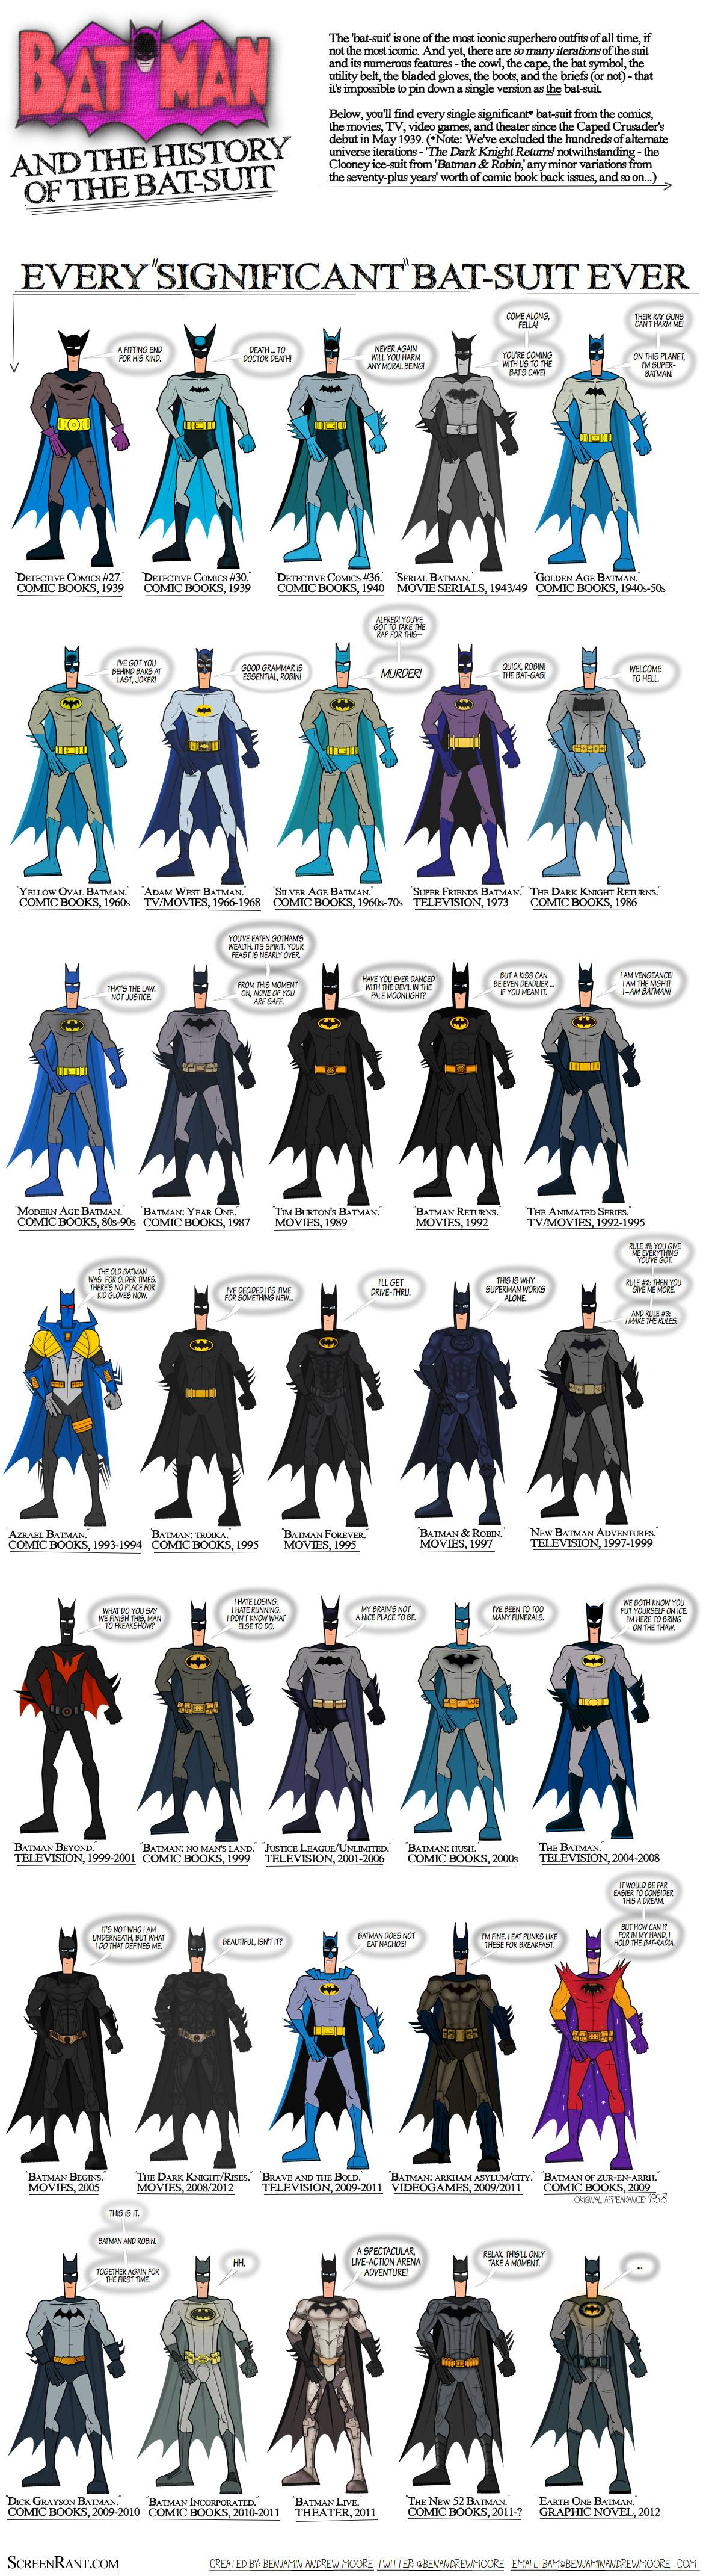 The Batman Suits Timeline With Images Batman Suit Batman